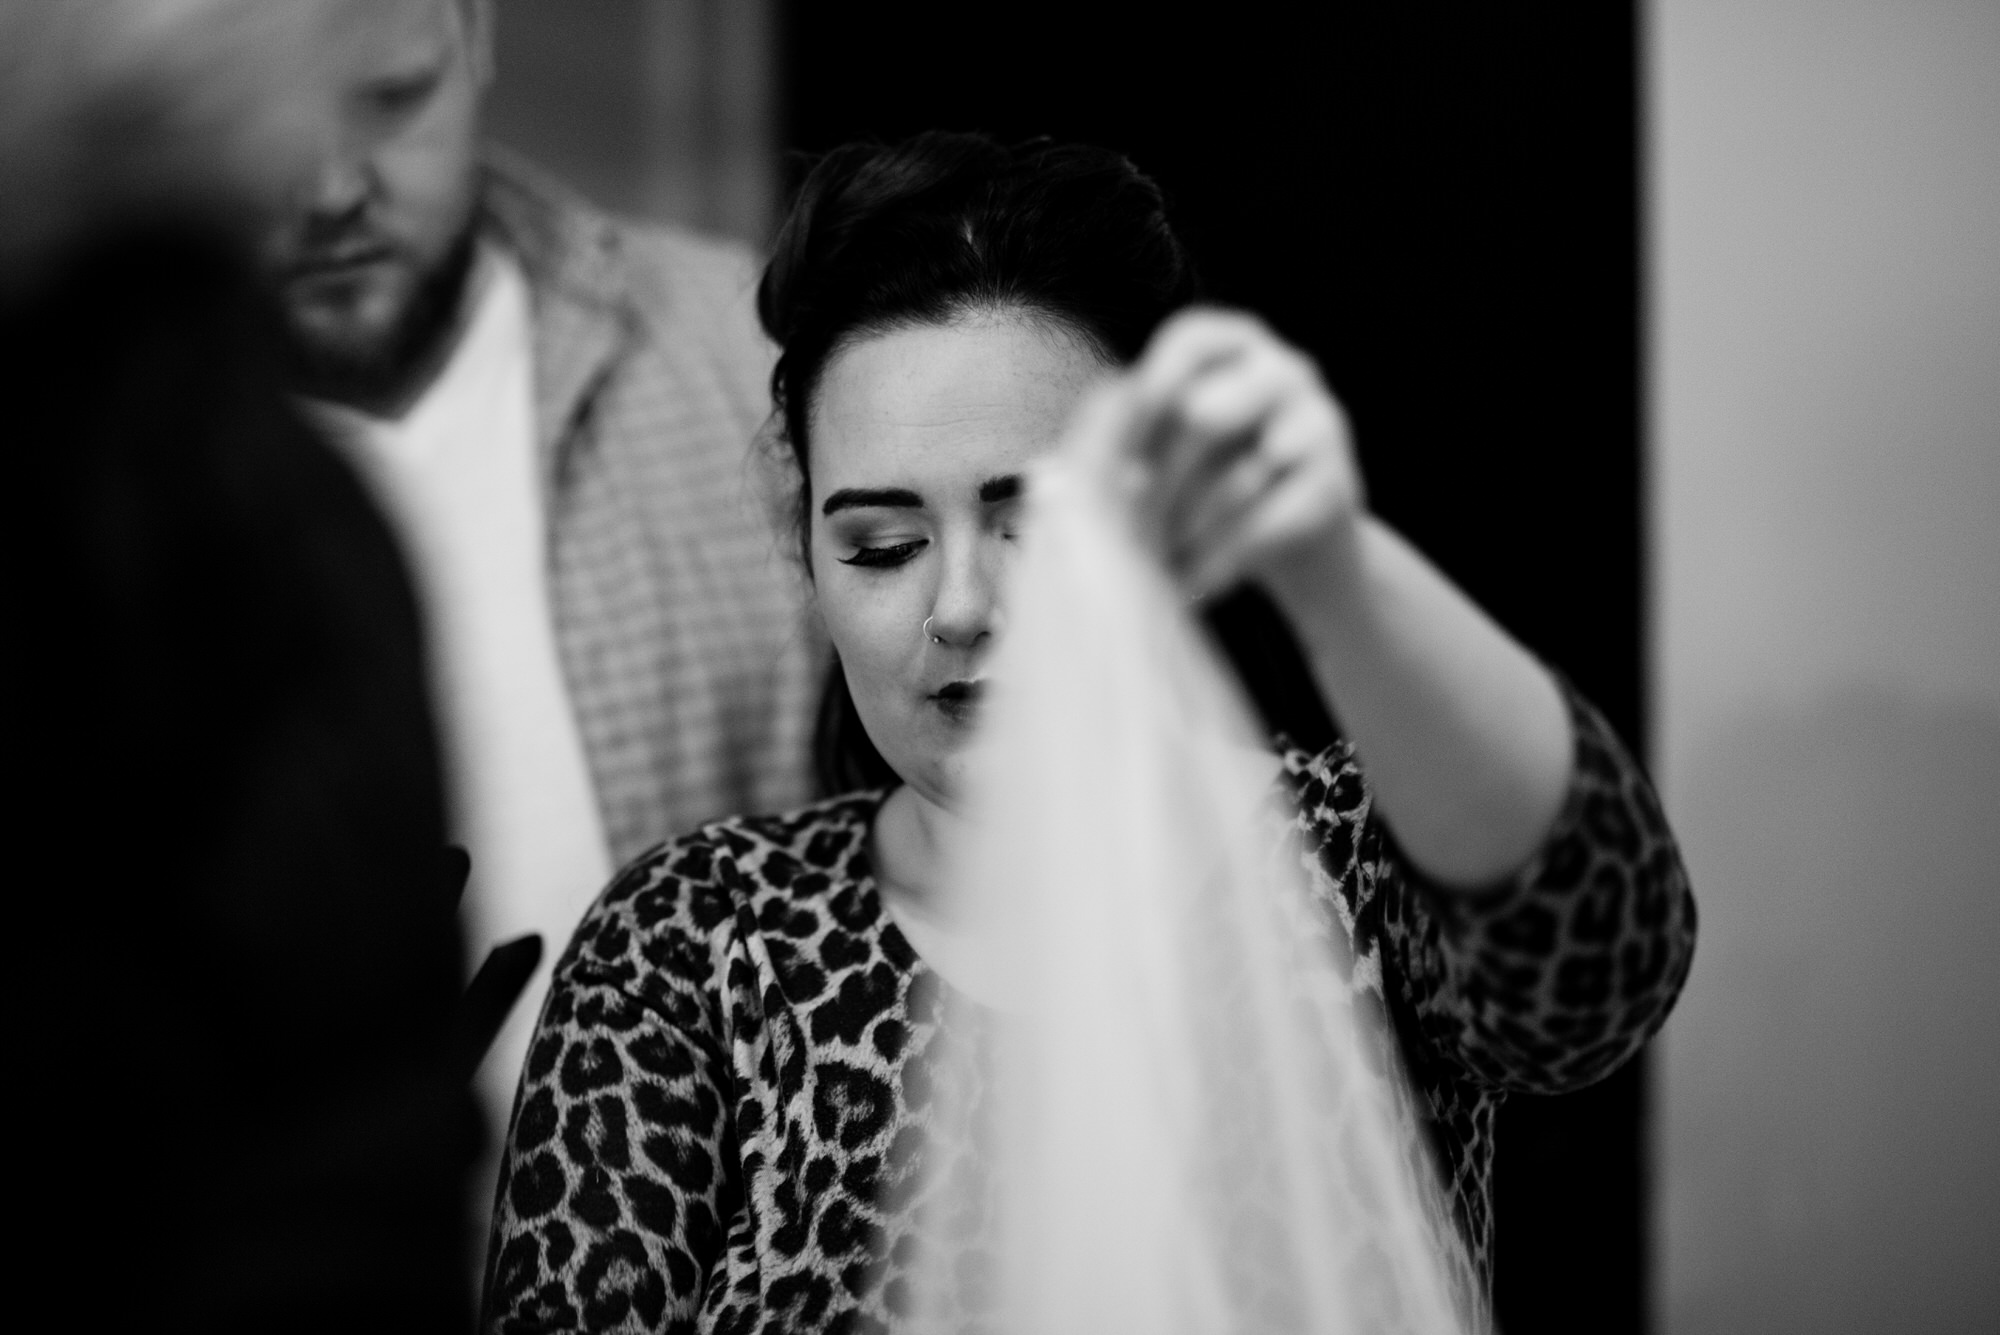 ten square hotel wedding getting ready bride with veil